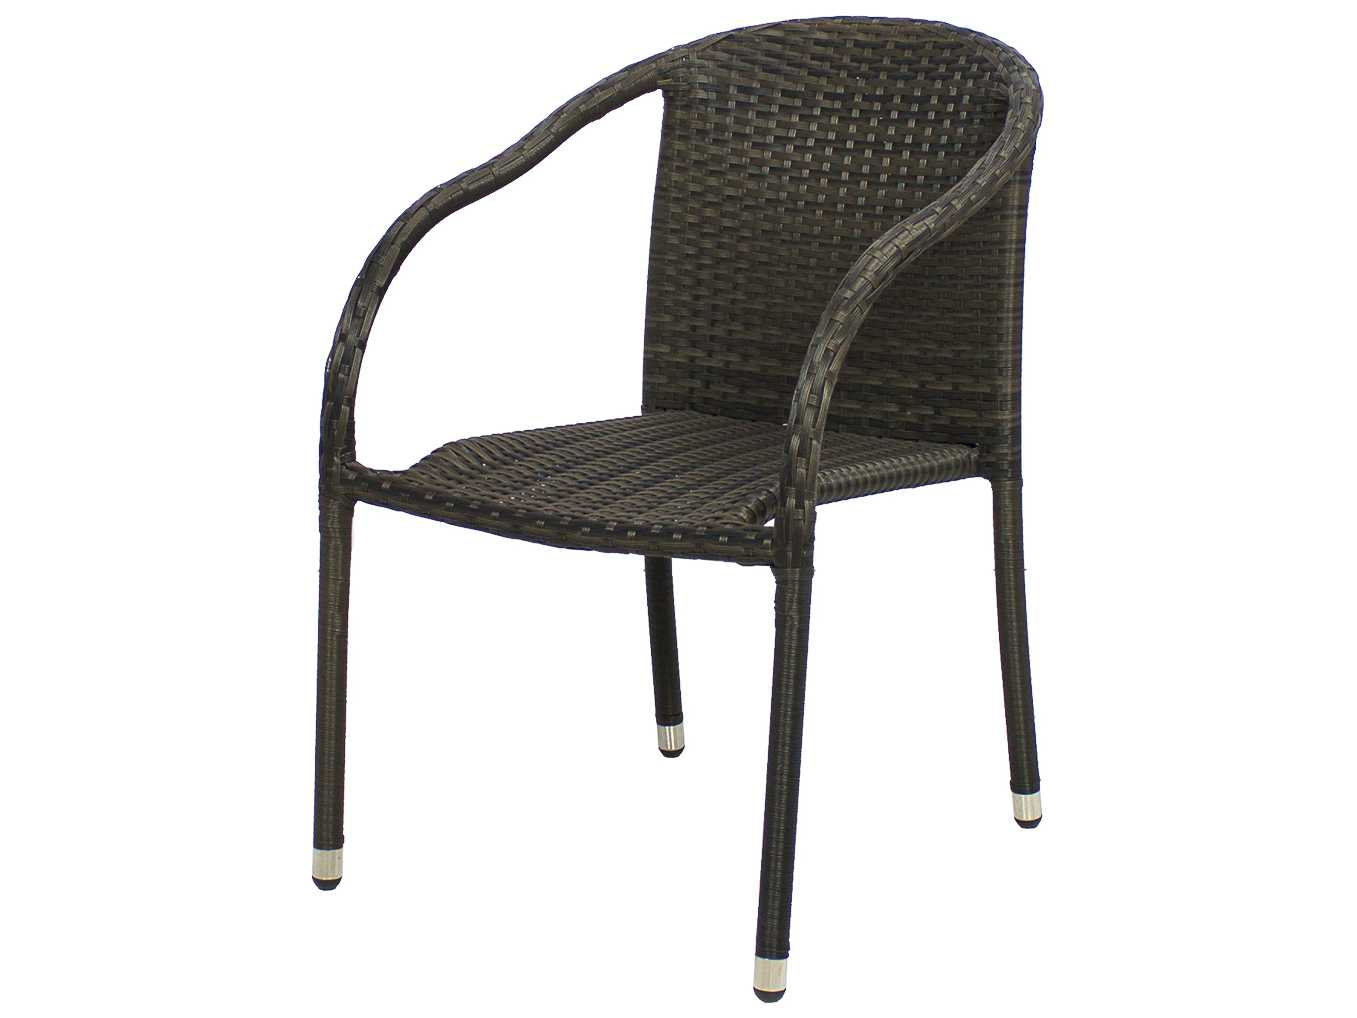 Outdoor Stackable Chairs Source Outdoor Furniture Circa Wicker Stackable Dining